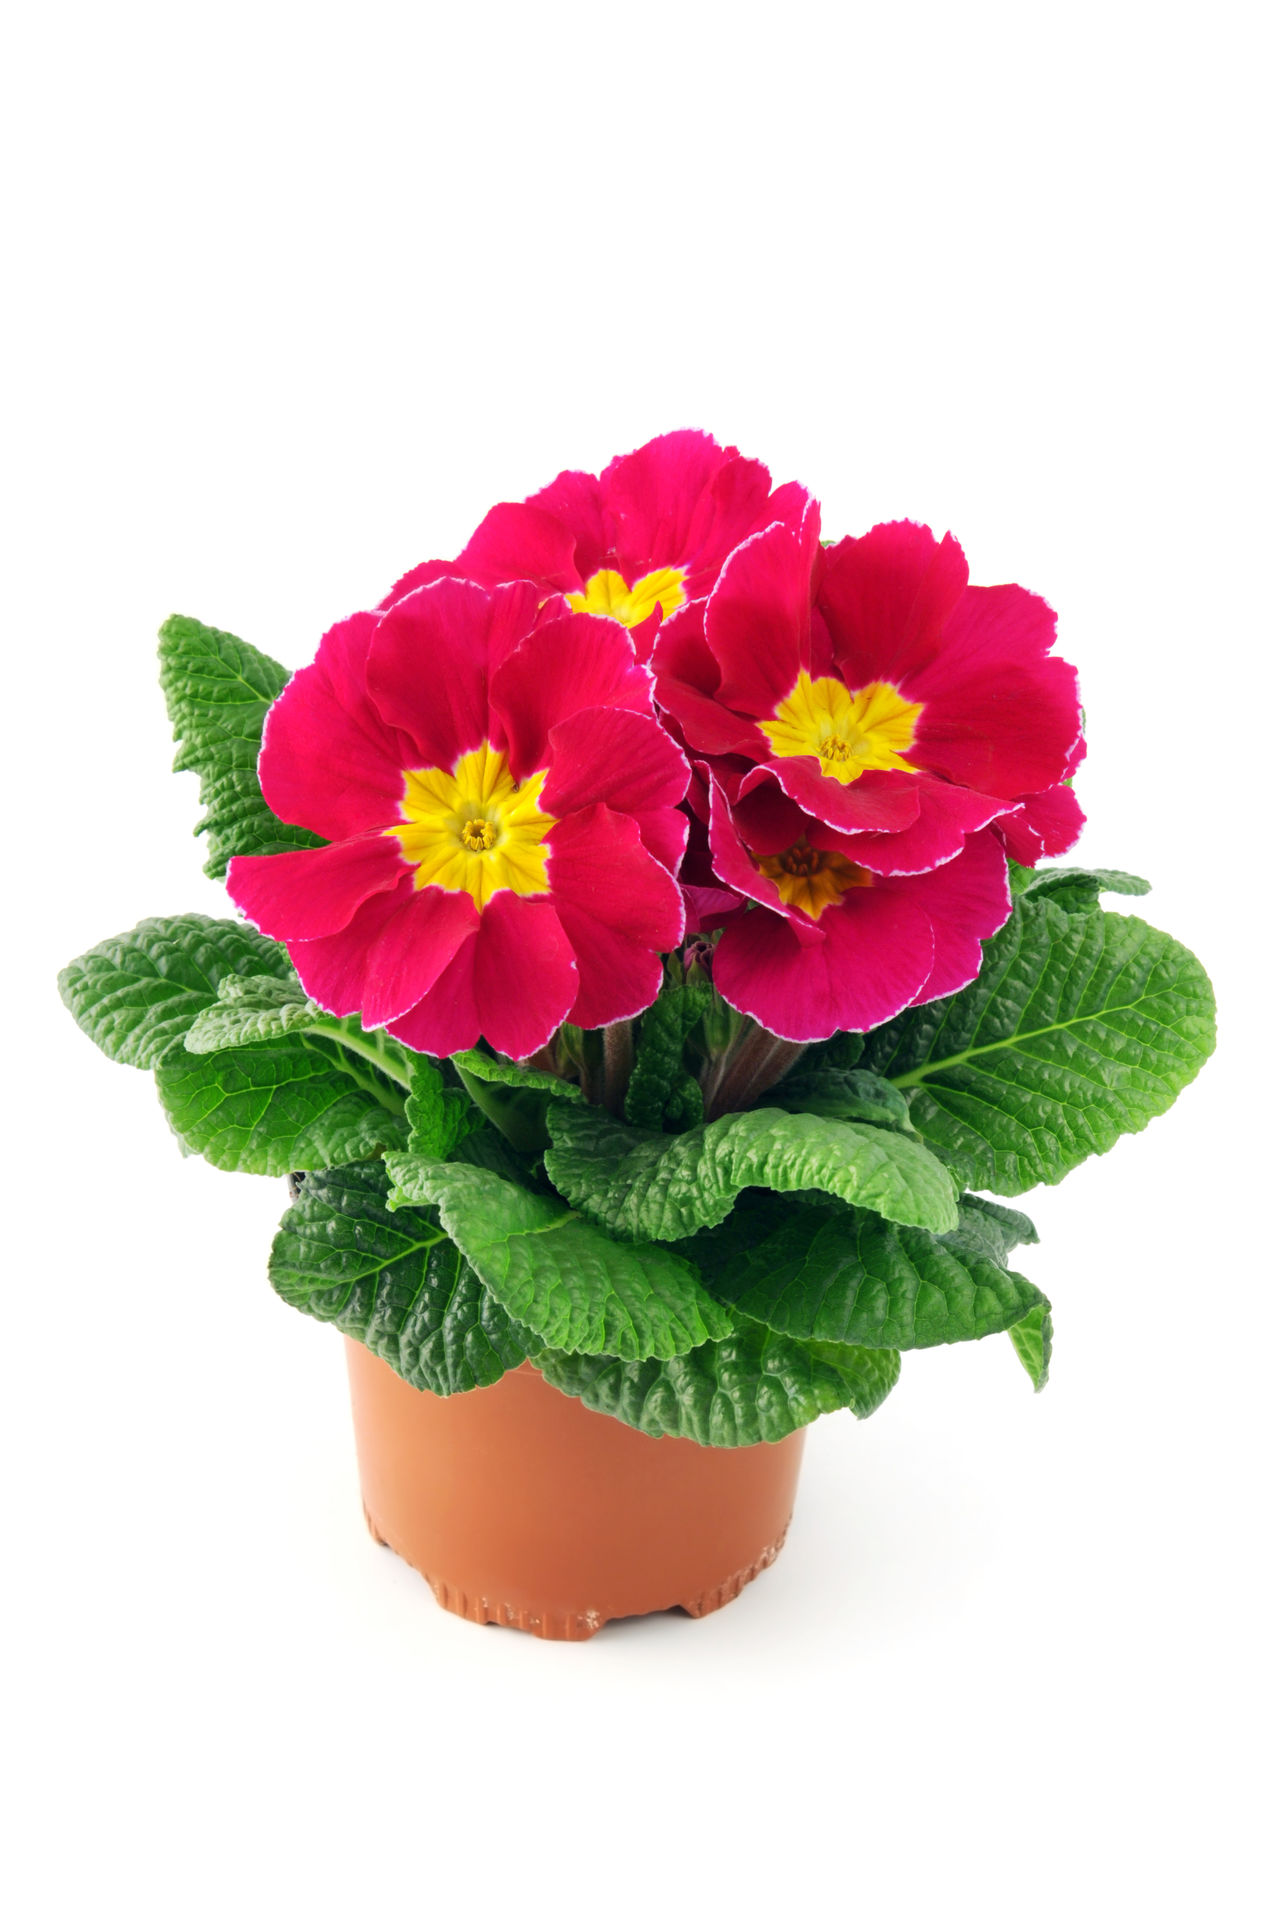 pink red primula on isolated white background. Close-up Flower Flower Head Flowerpot Freshness Isolated Isolated On White Isolated White Background Pink Flower Plant Potted Potted Flower Potted Flowers Potted Plant Primrose Primroses Primula Primulas Red Flower Studio Shot White Background Yellow Flower